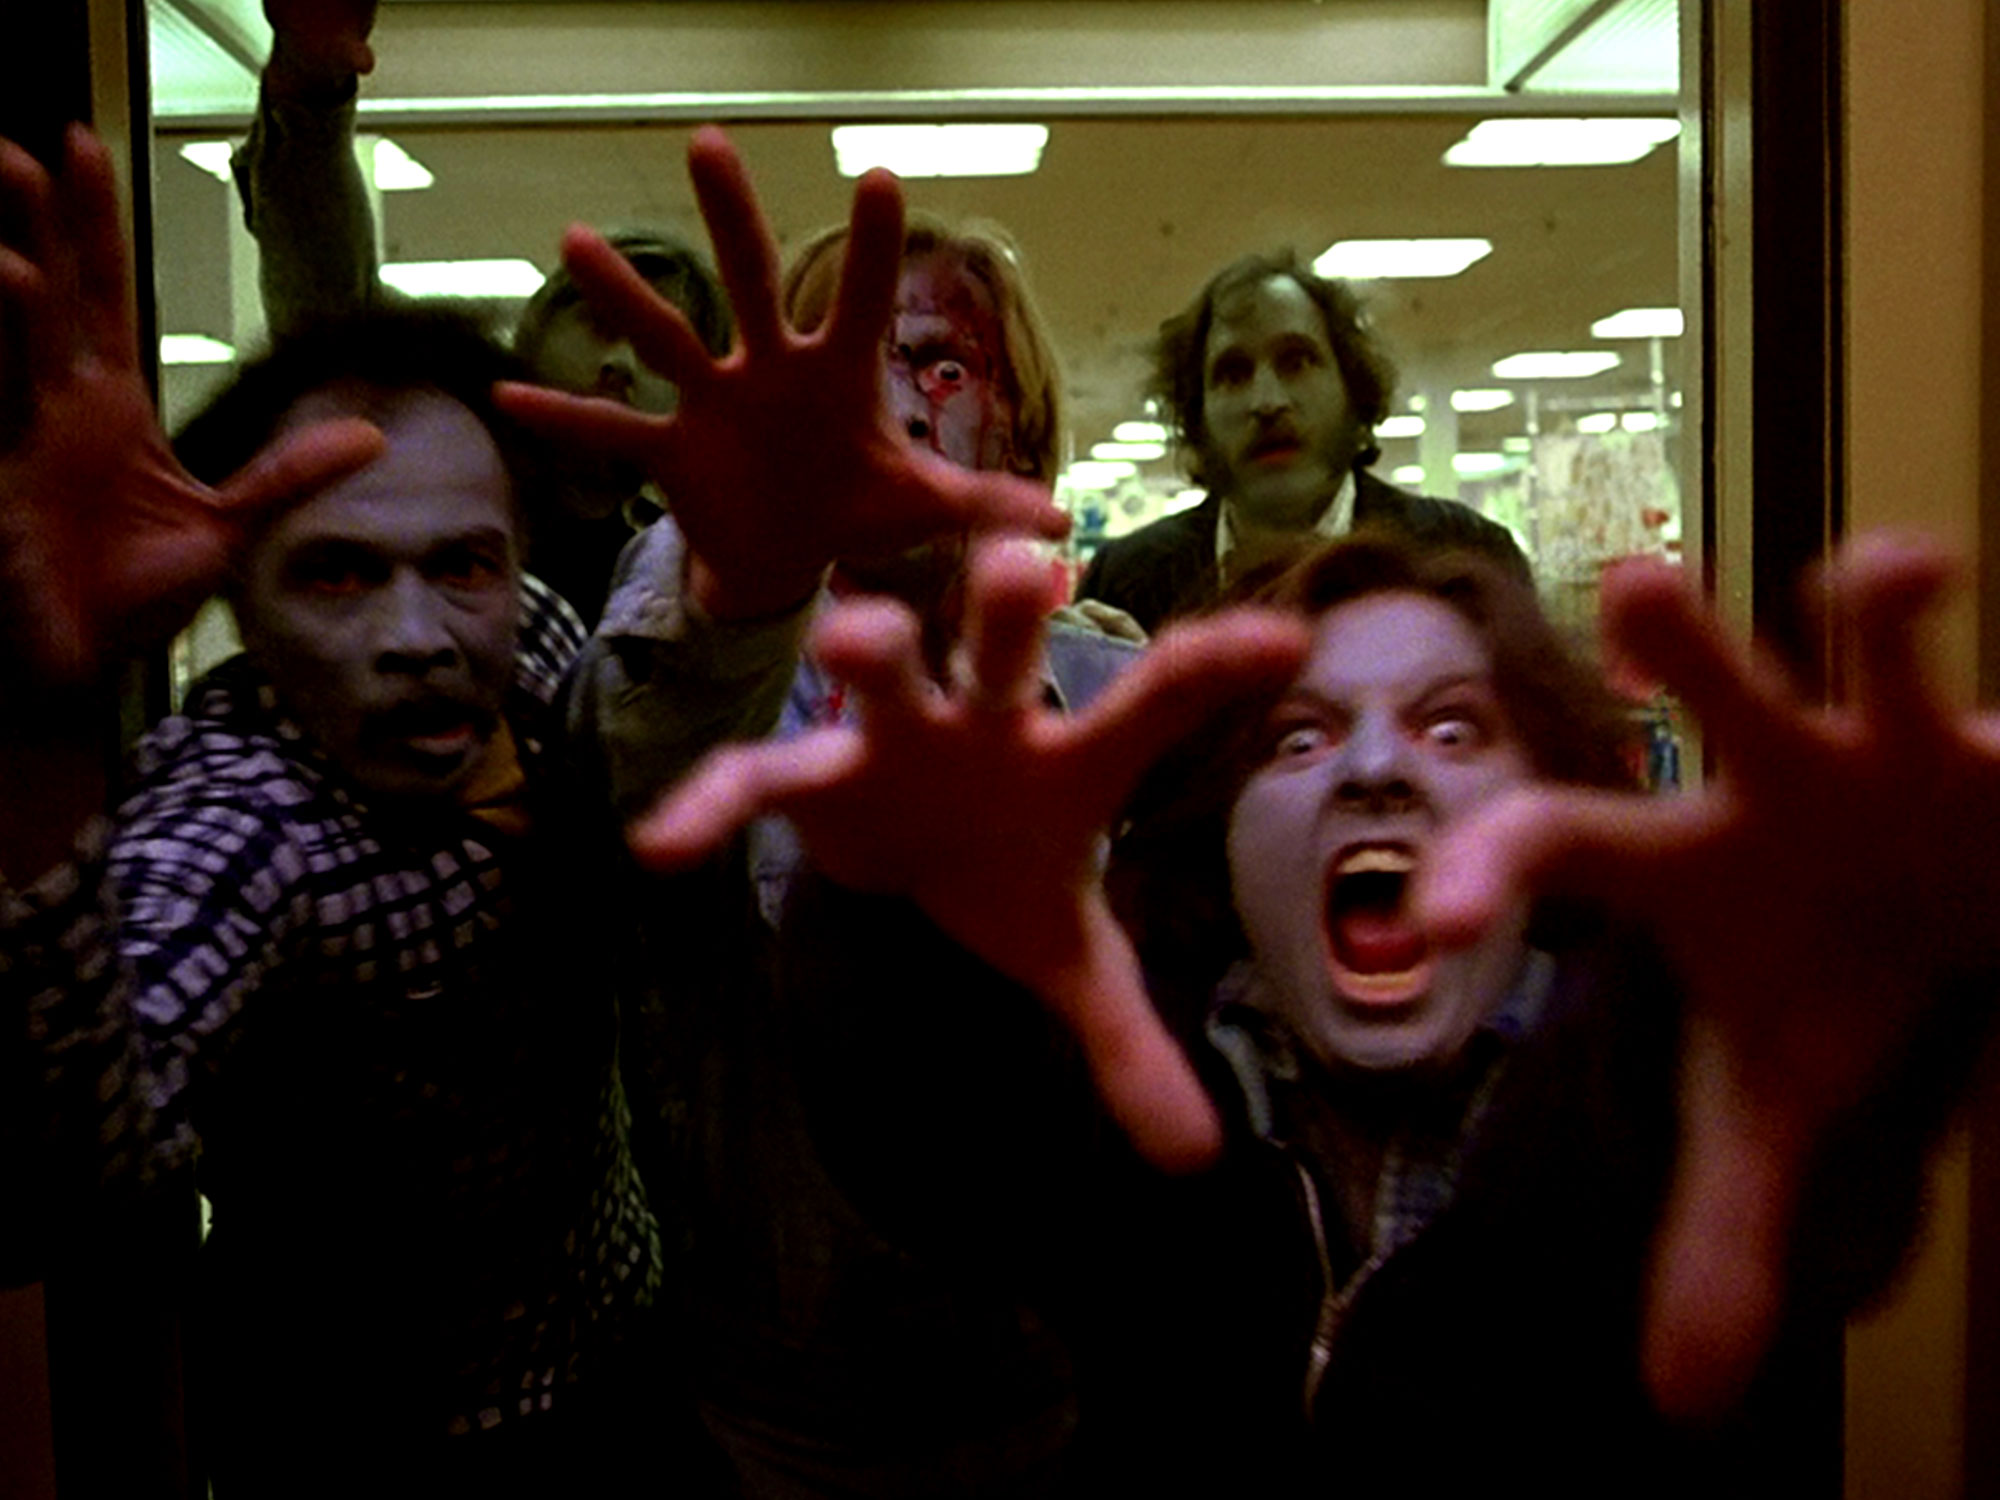 Dawn of the Dead had an alternate ending that's even bleaker than the original